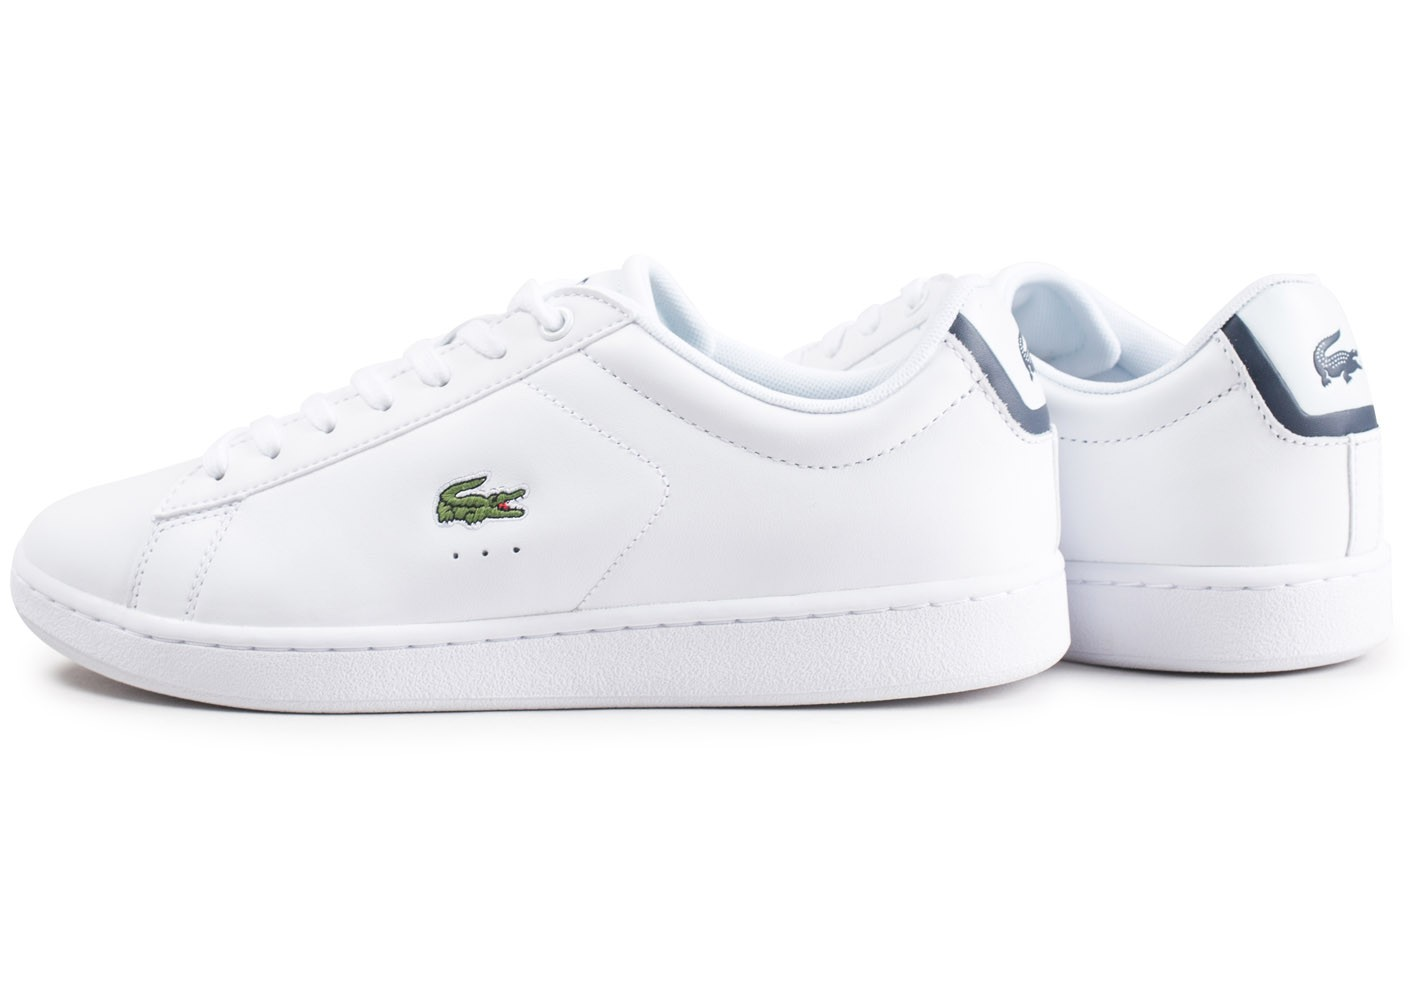 Evo Chaussures Chausport Baskets Homme Carnaby Cuir Blanc Lacoste CqA6xwf